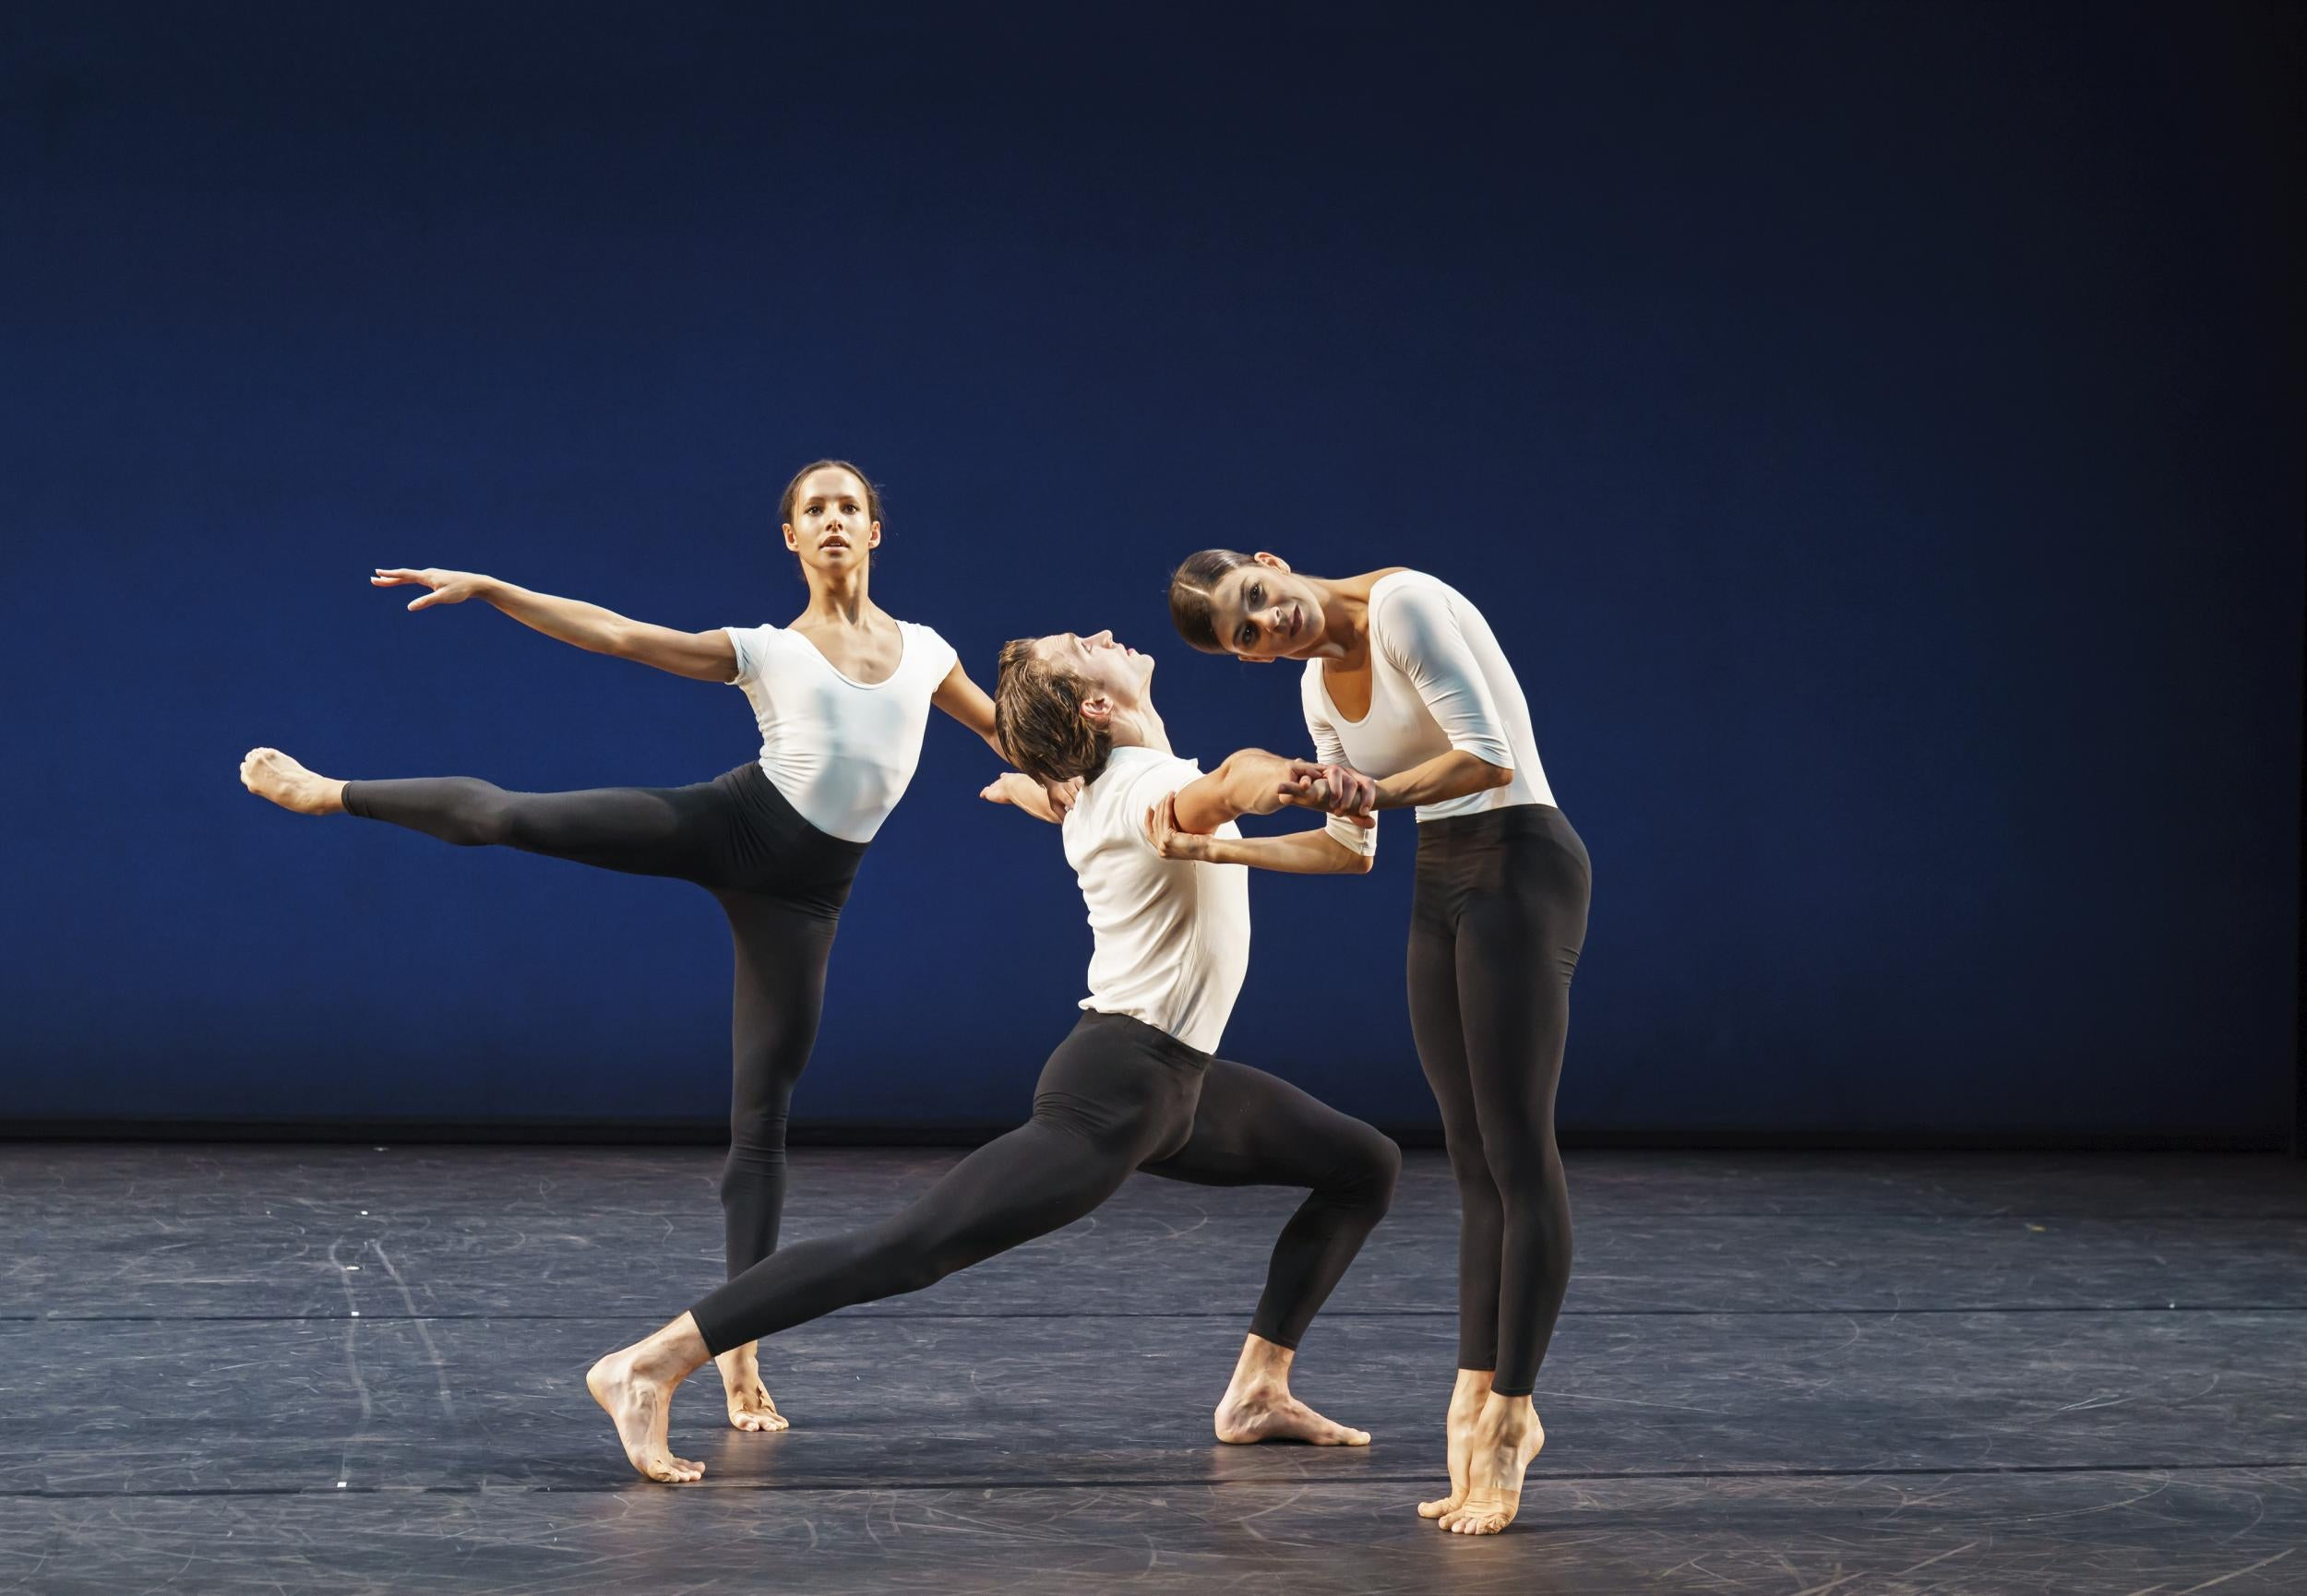 The Royal Ballet, Linbury Theatre, Royal Opera House review: 'Rigorous production ranges from prickly to serene'